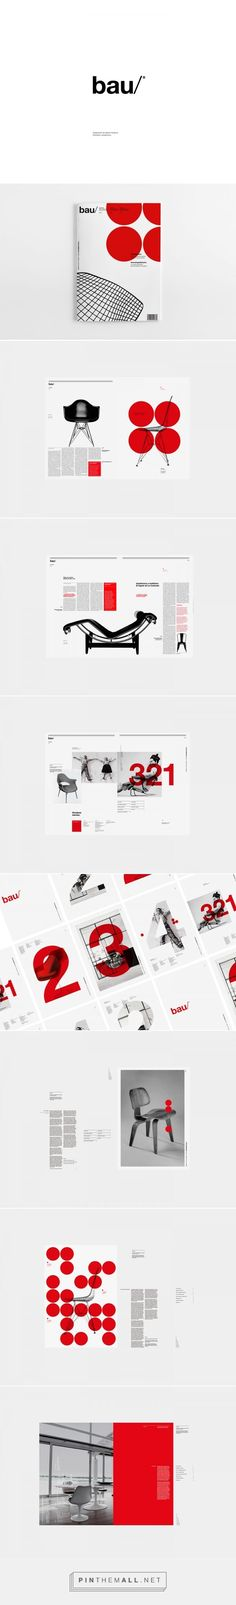 bau®️️ Magazine on Behance - created via https://pinthemall.net